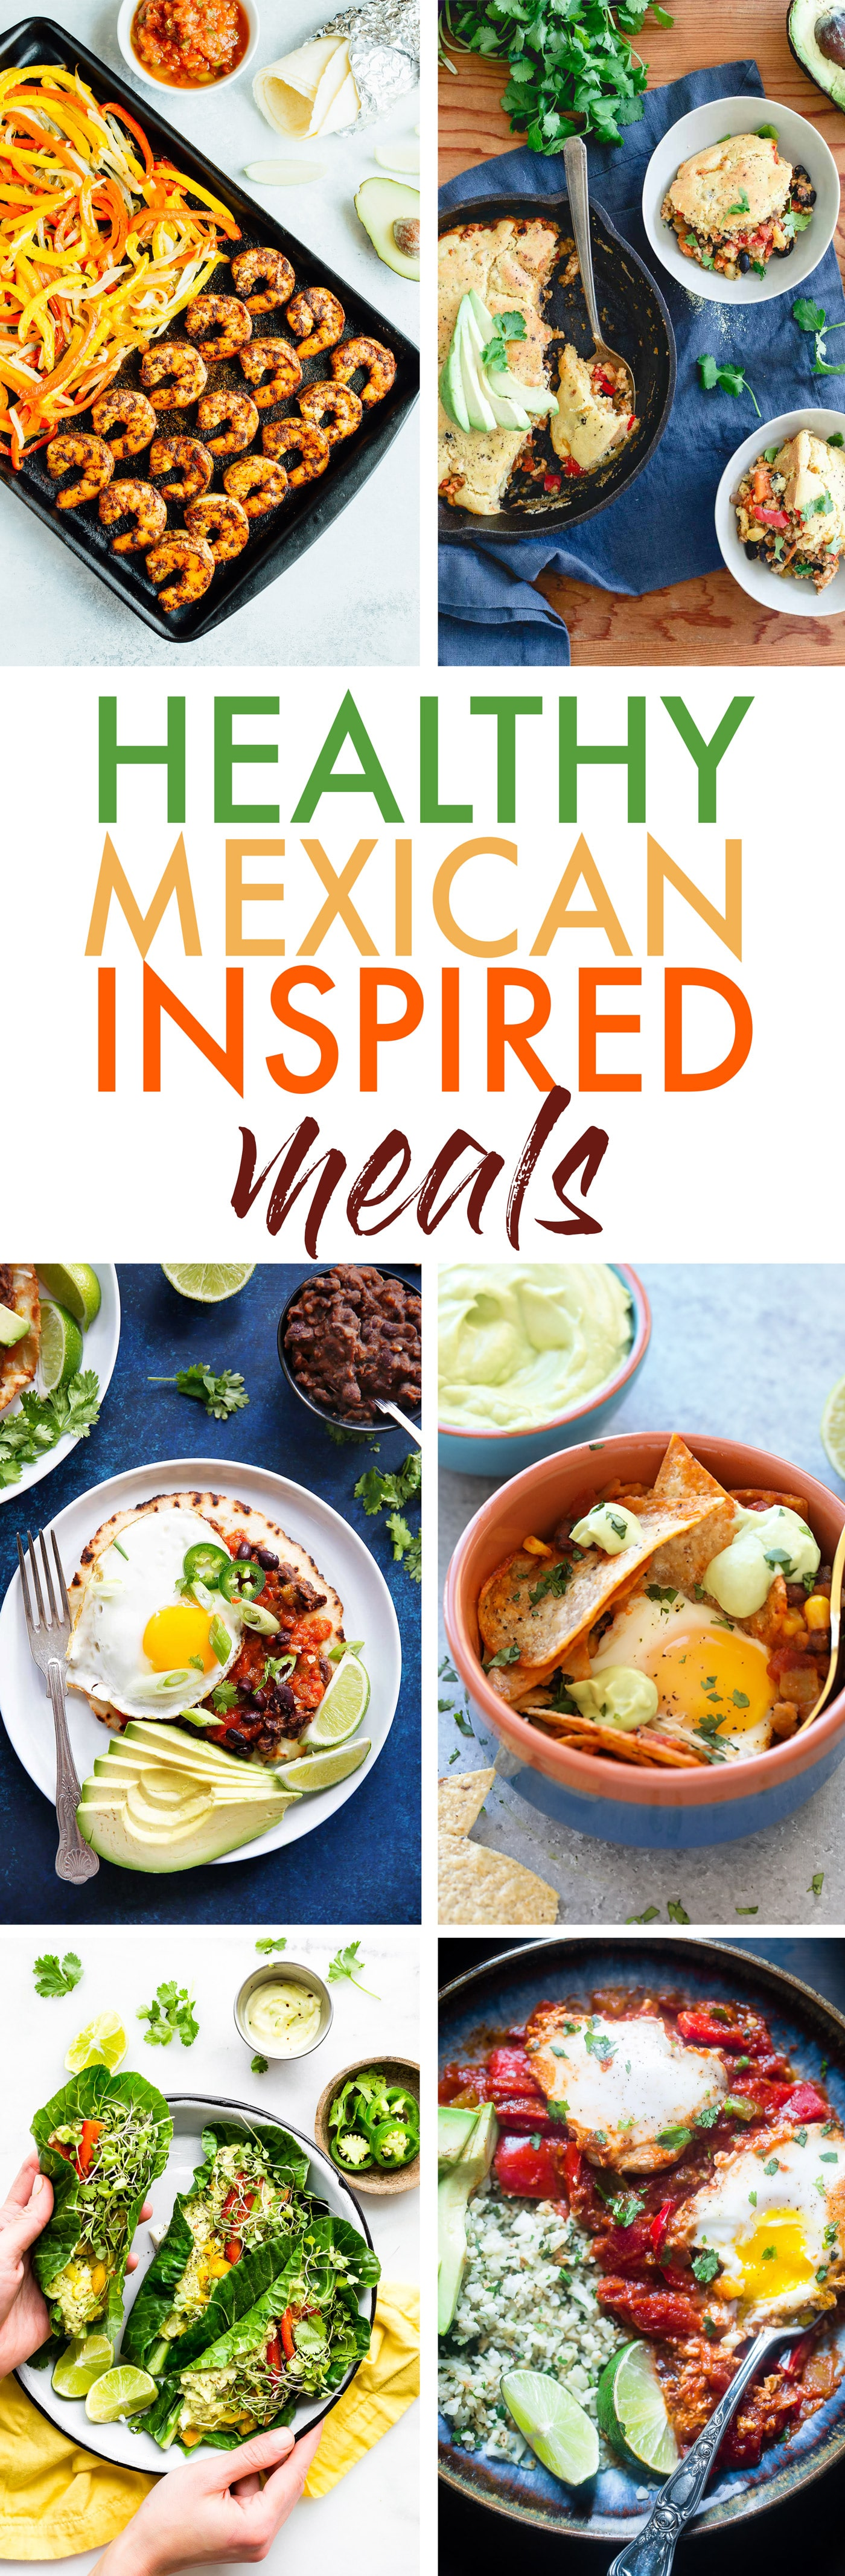 Healthy Mexican Inspired Meals! Gluten free, Paleo options.